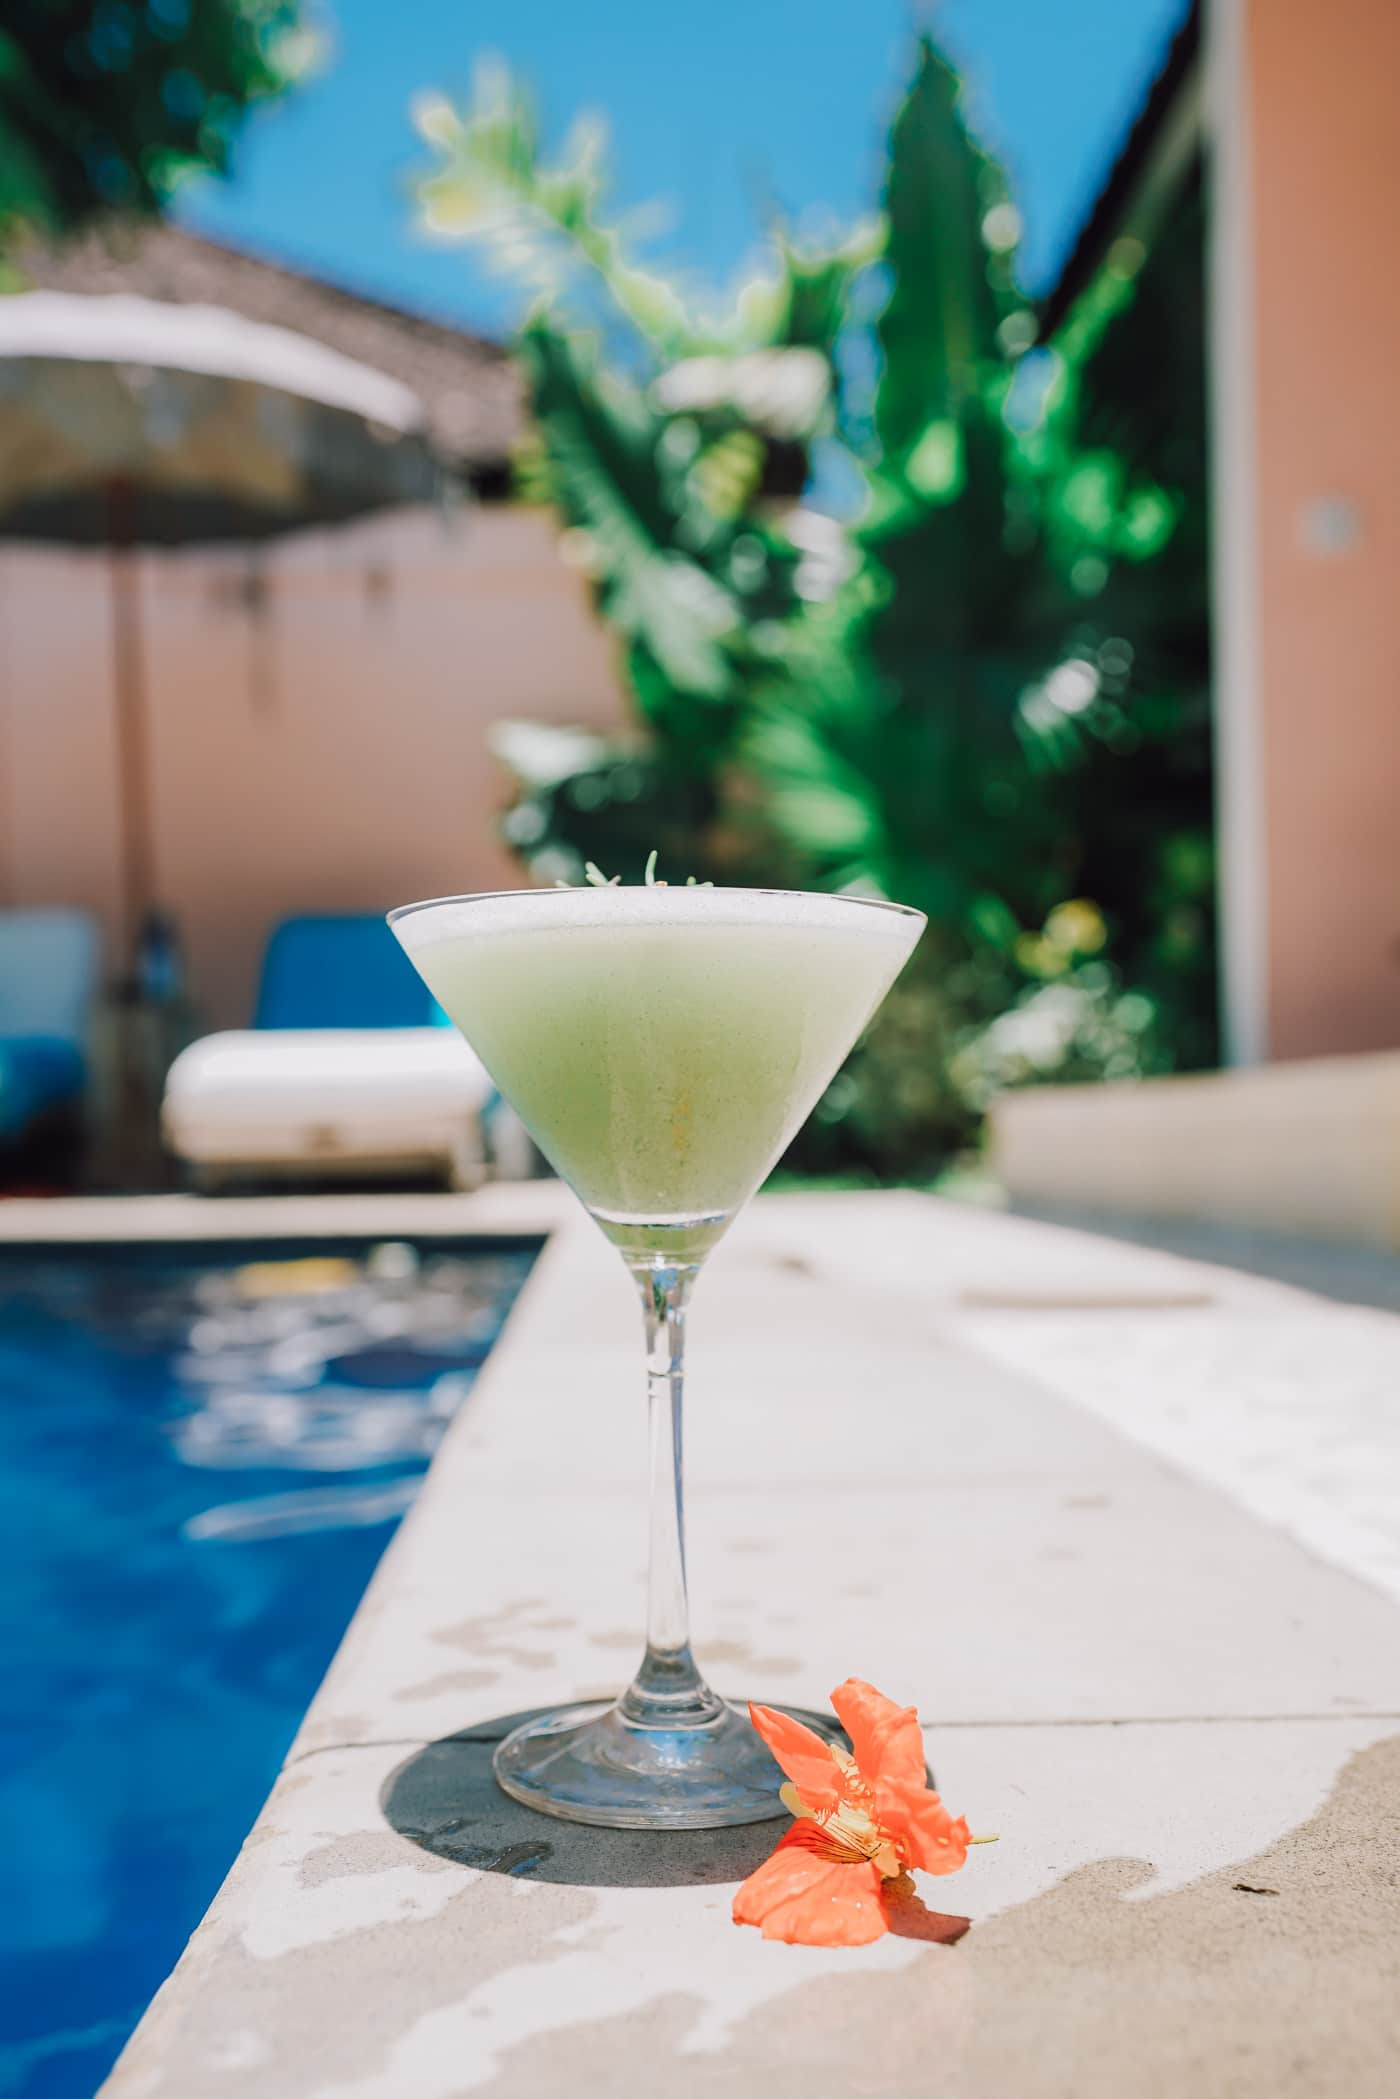 Looking for the best place to stay in Canggu? Looking for great Bali food and an amazing yoga retreat in Bali? Look no further than The Chillhouse Bali and Cassava Poolside café | Travel Bali | Travel Canggu #travelbali #bali #thechillhouse #yogaretreat #baliyoga